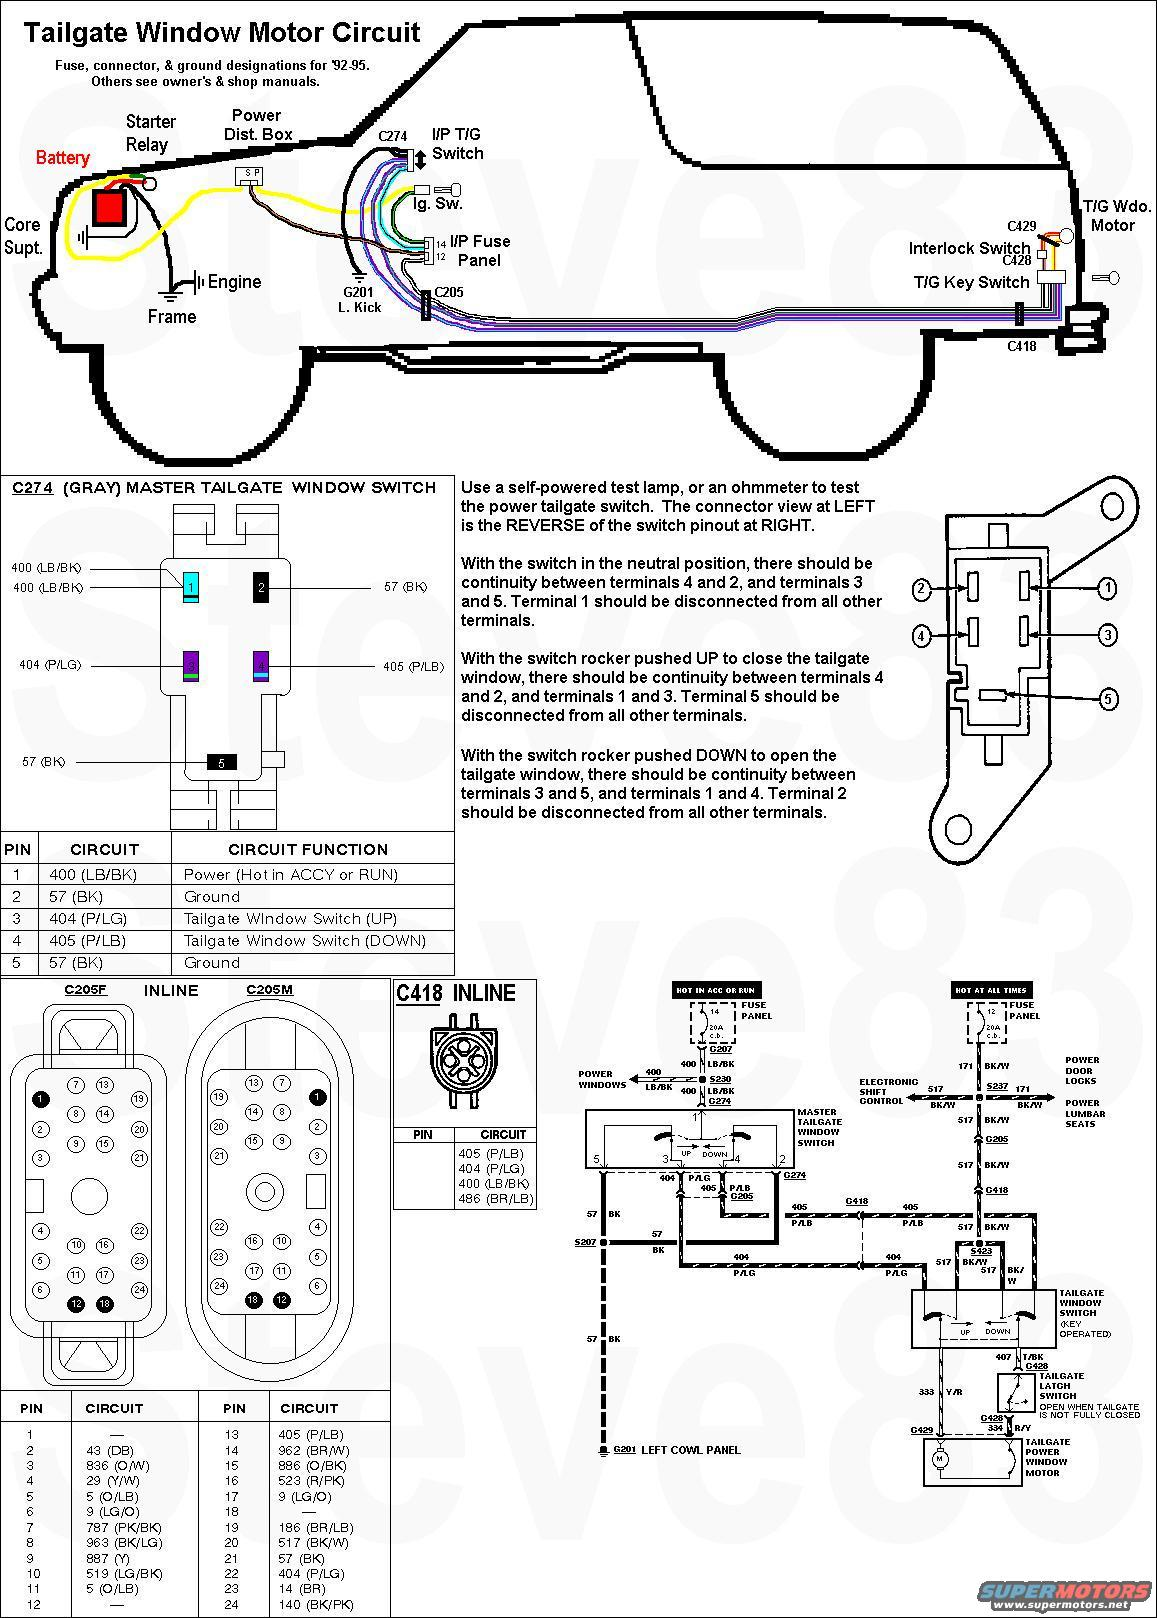 1988 ford ranger wiring diagram wiring diagram and hernes 2 9 eefi wiring diagram the ranger station forums